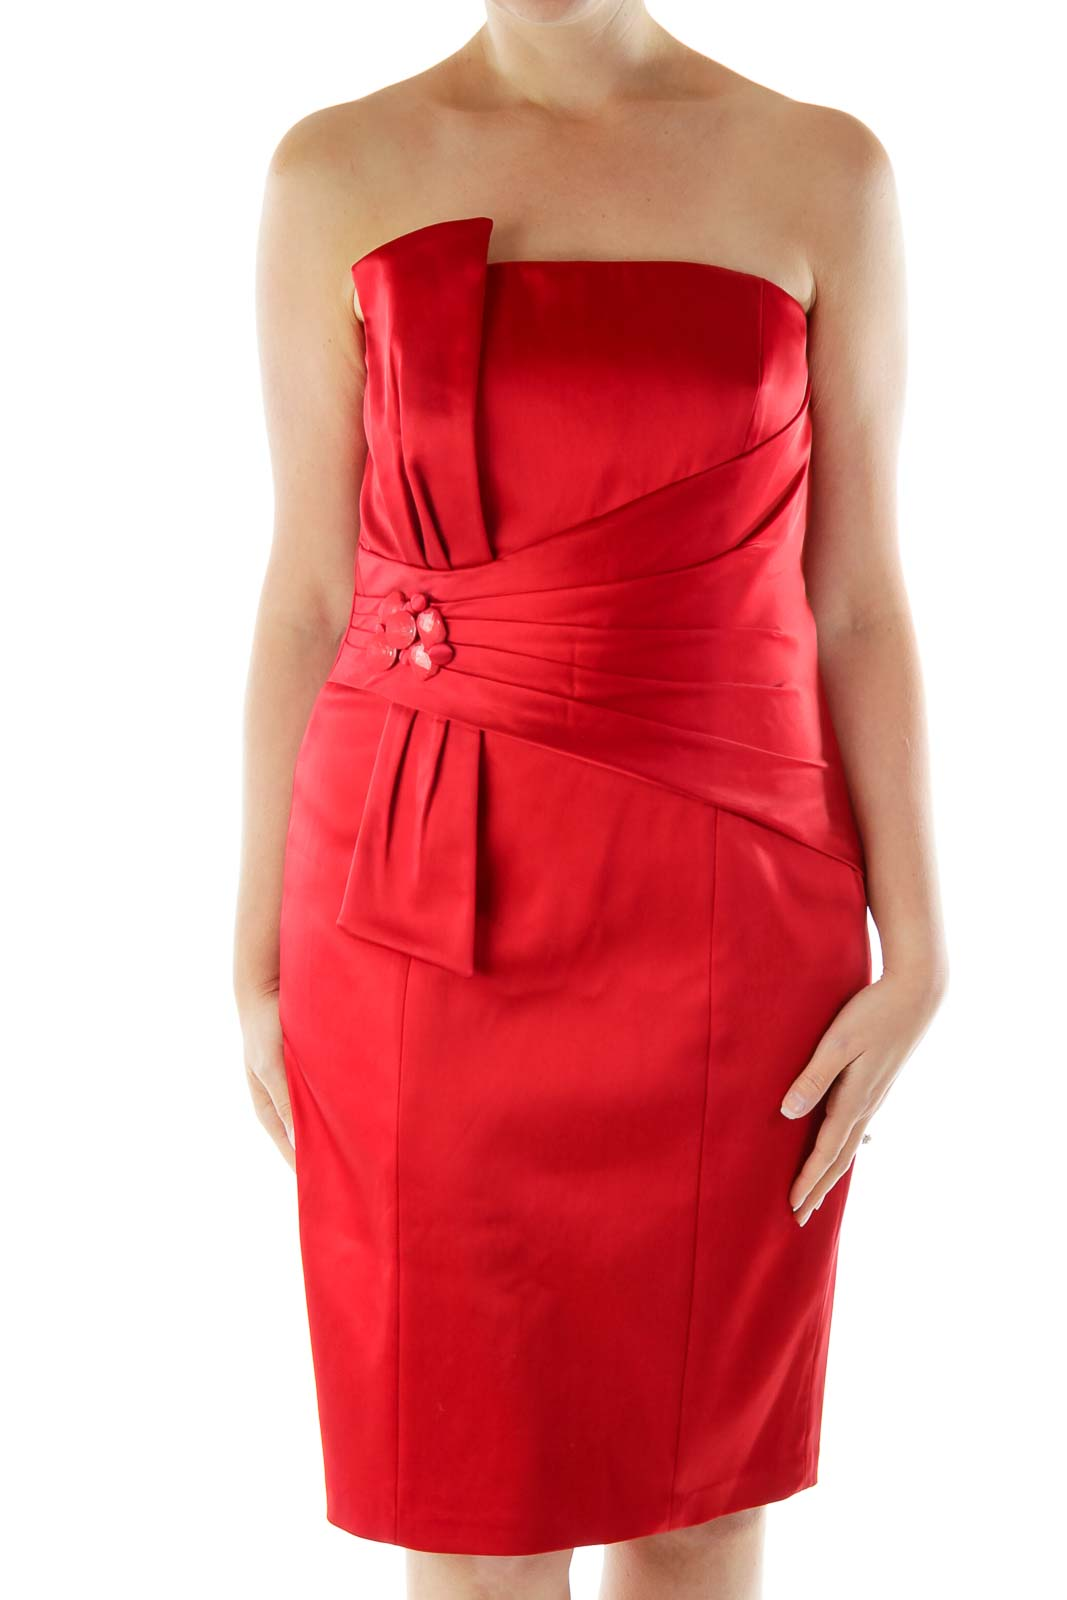 Red Strapless Satin Dress Front